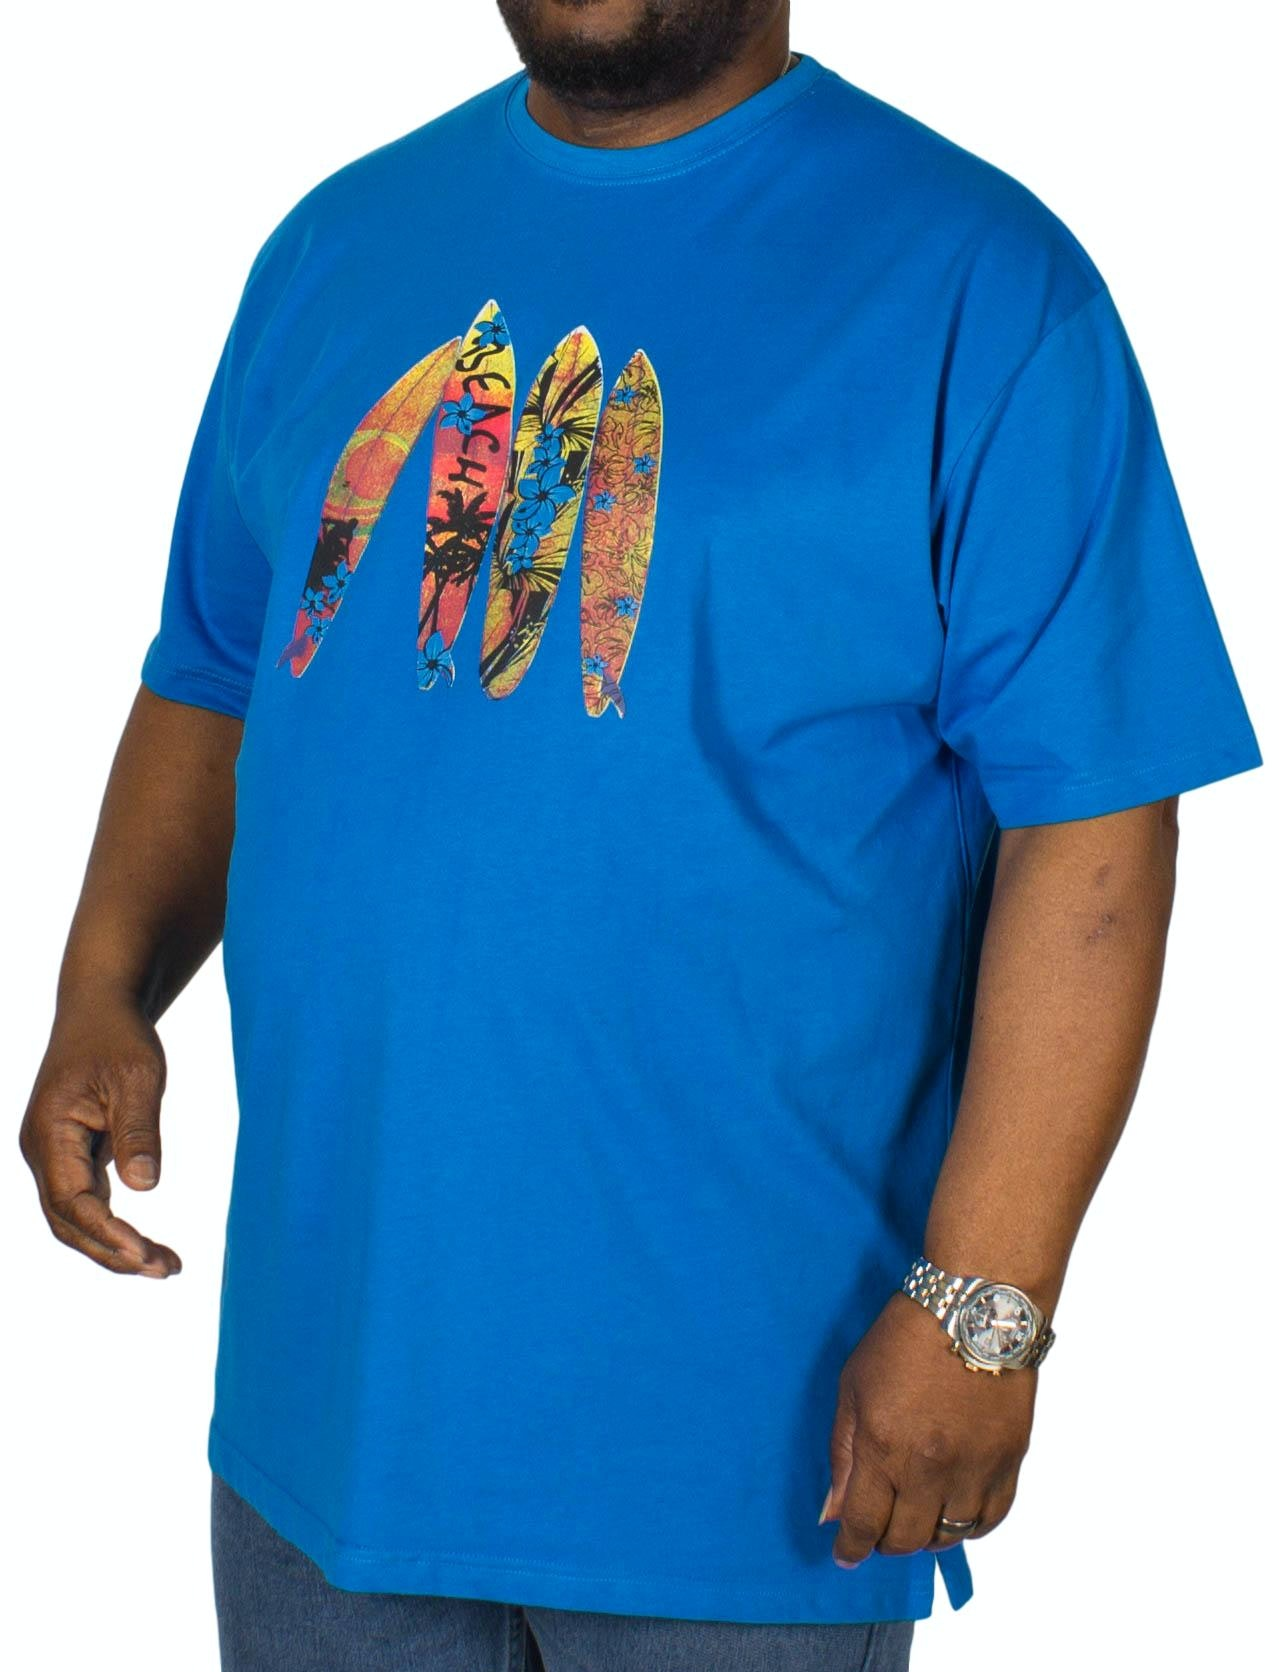 Cotton Valley Surfboard Printed T-Shirt Blue